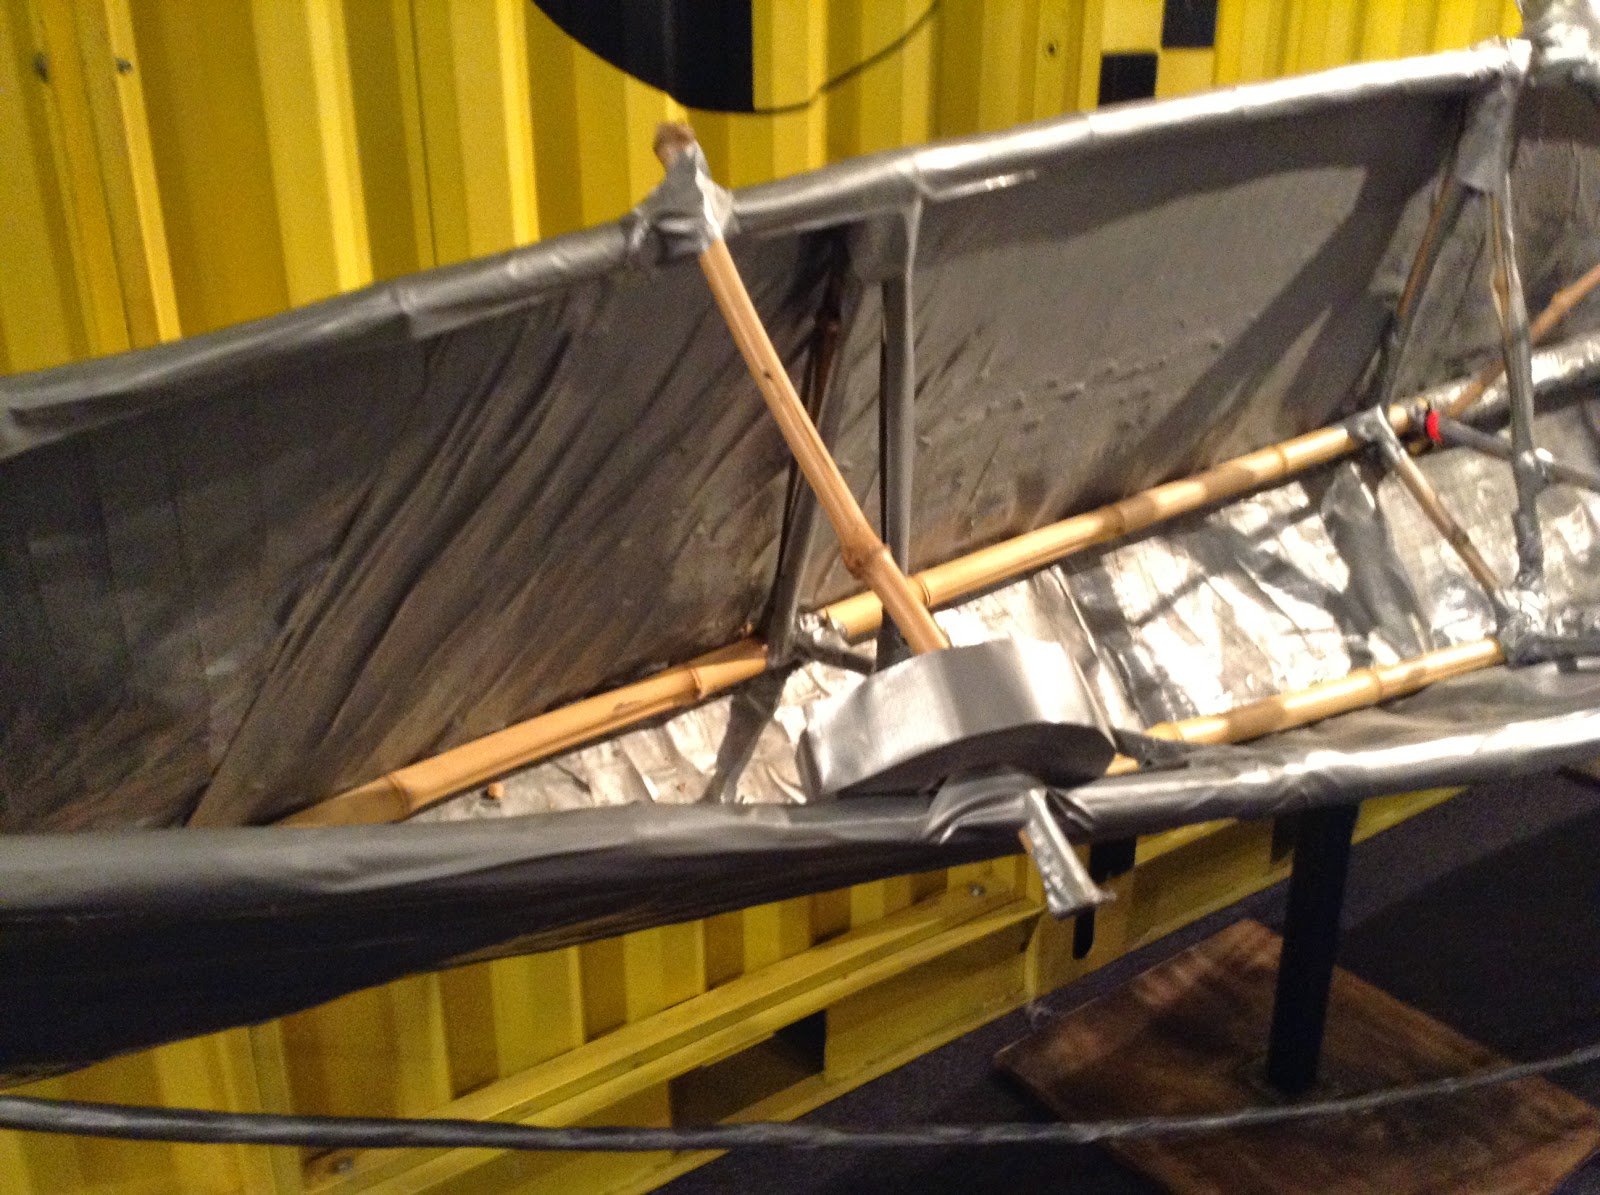 The duct tape boat at Mythbusters #beamythbuster